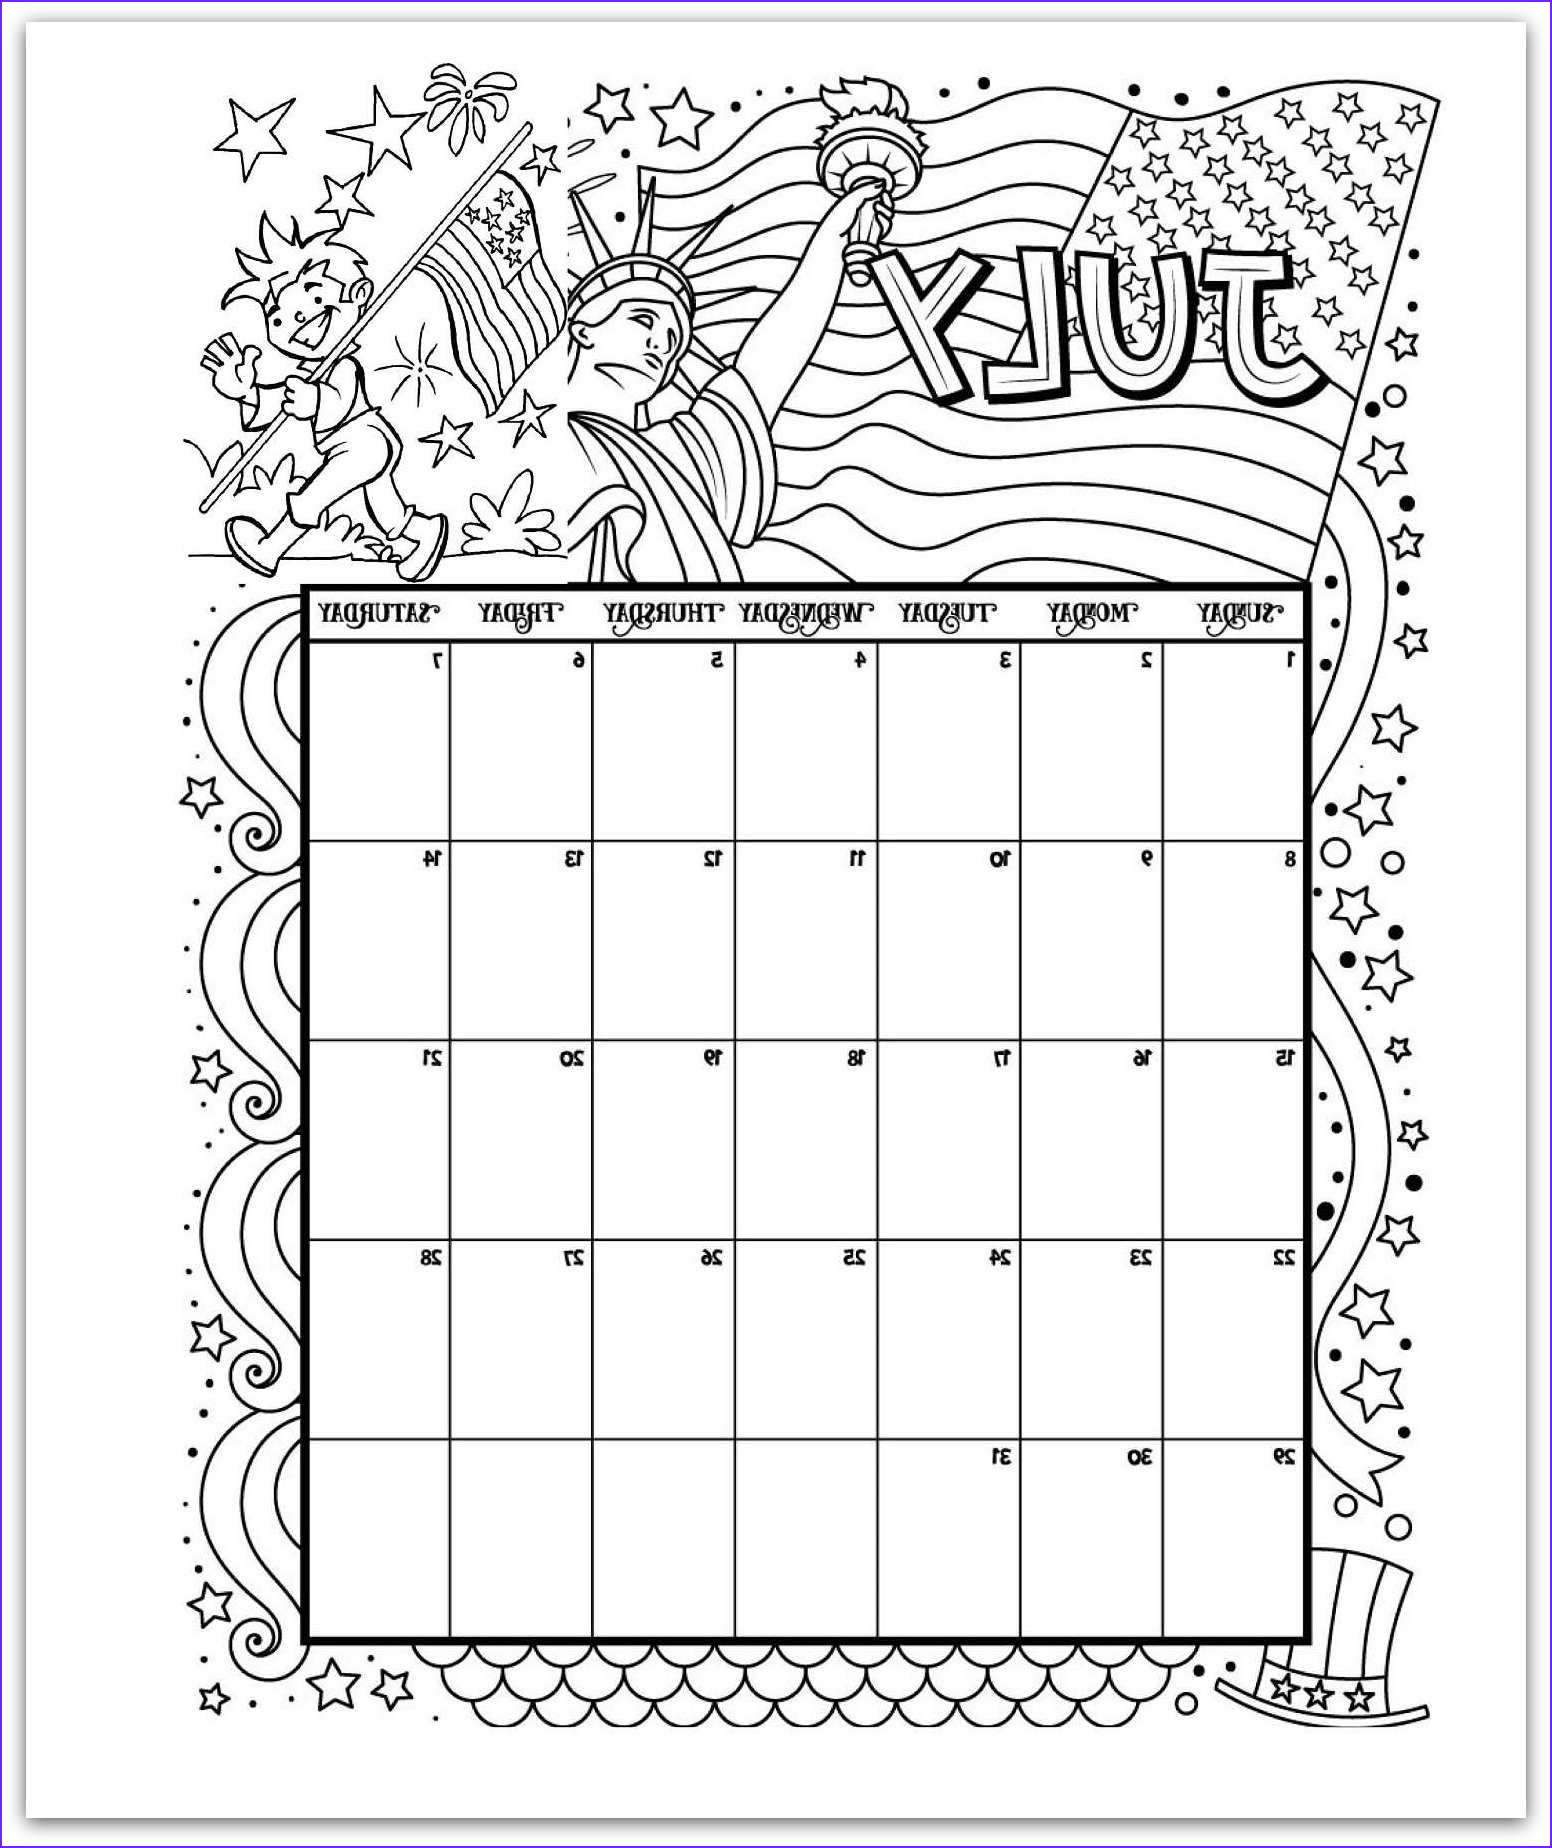 Coloring Calendar Best Of Gallery 2019 Coloring Pages Printable Monthly Calendars for Kids